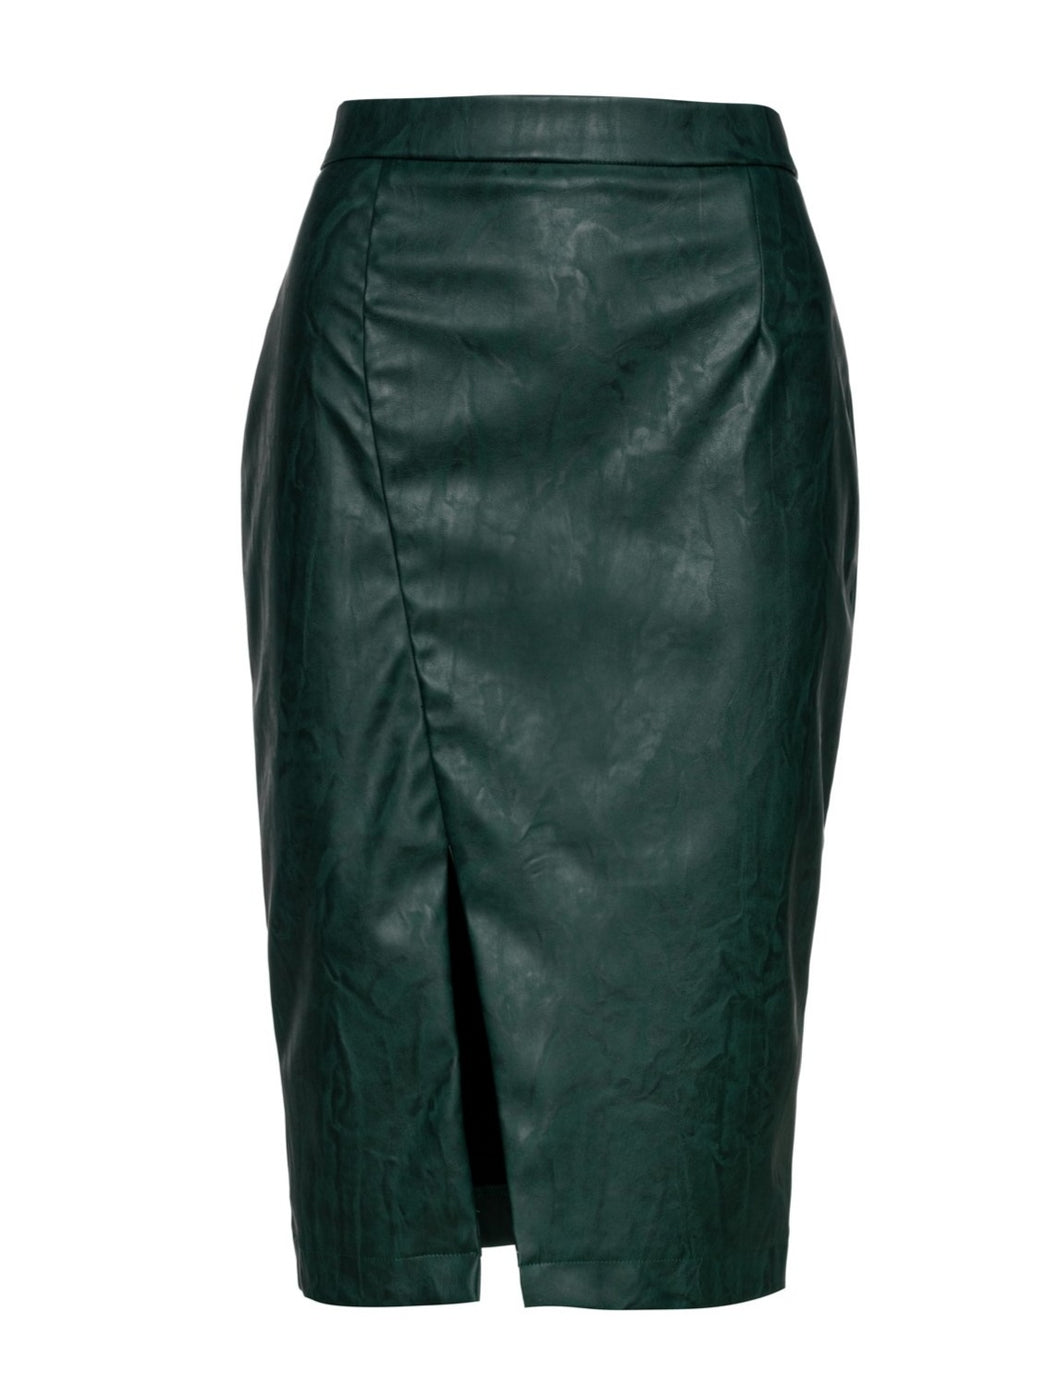 Green Faux Leather Pencil Skirt